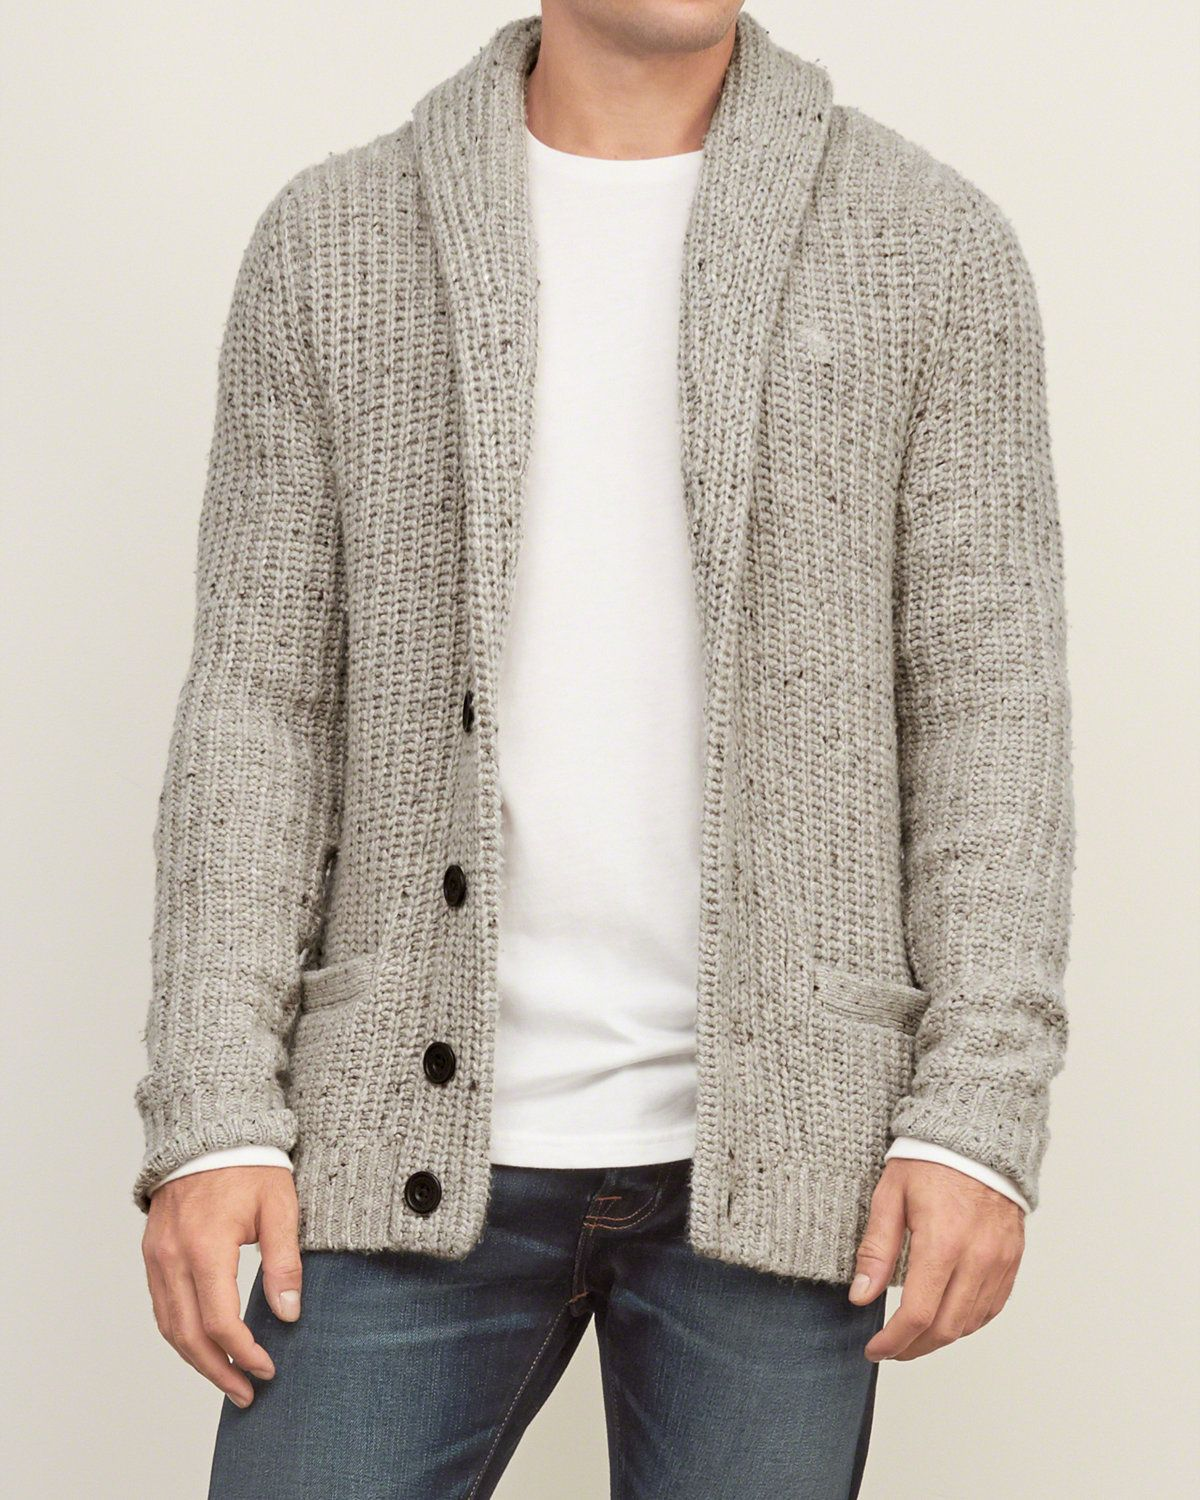 Shawl cardigan with elbow patch. | The year of the gentlemen ...